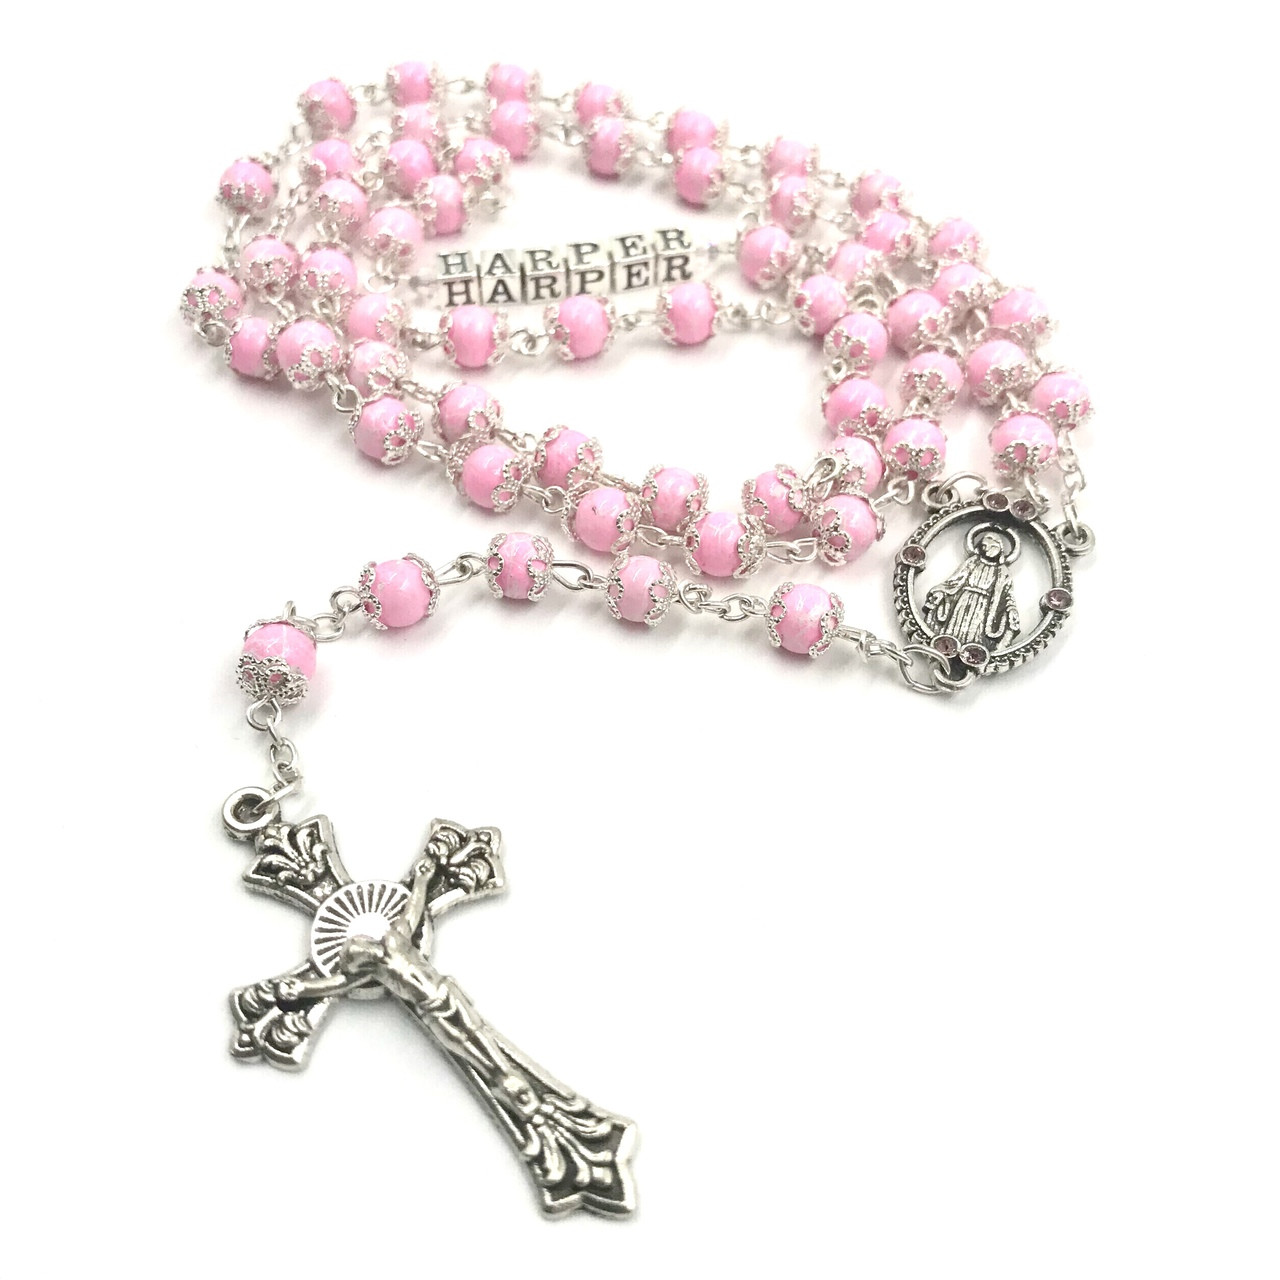 be54a32b6 Personalised Pink Rosary Beads - Crystal Blessed Mother By Gifted ...